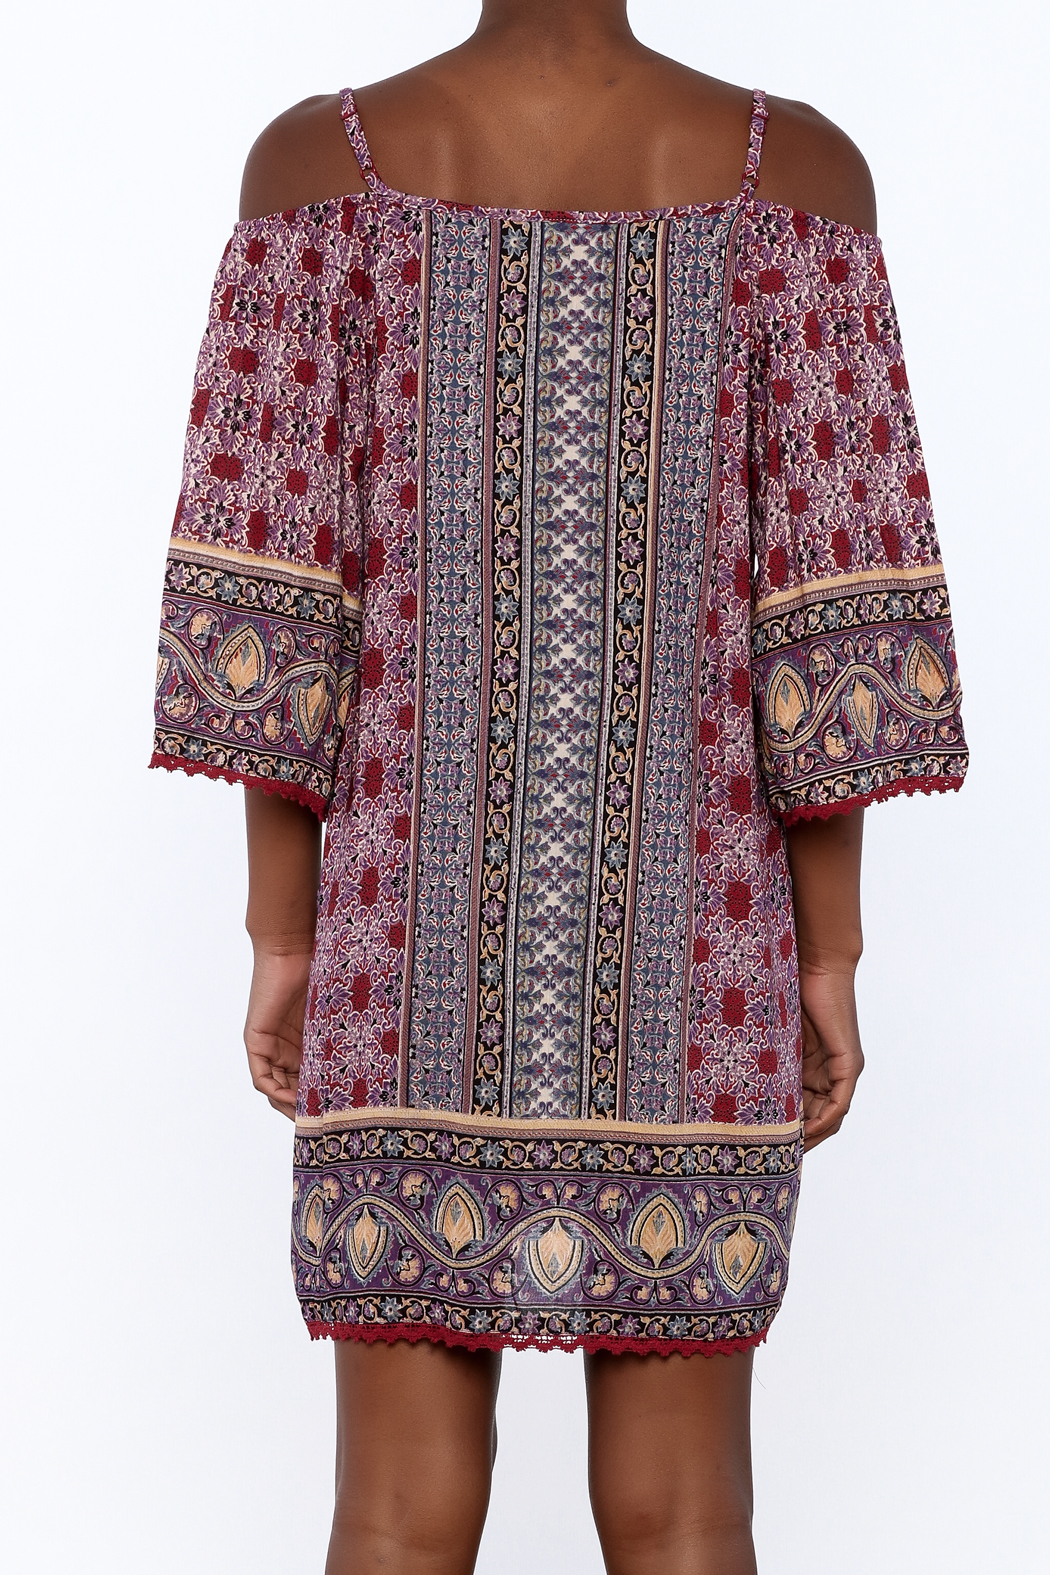 Gina Louise Gypsy Free Dress - Back Cropped Image